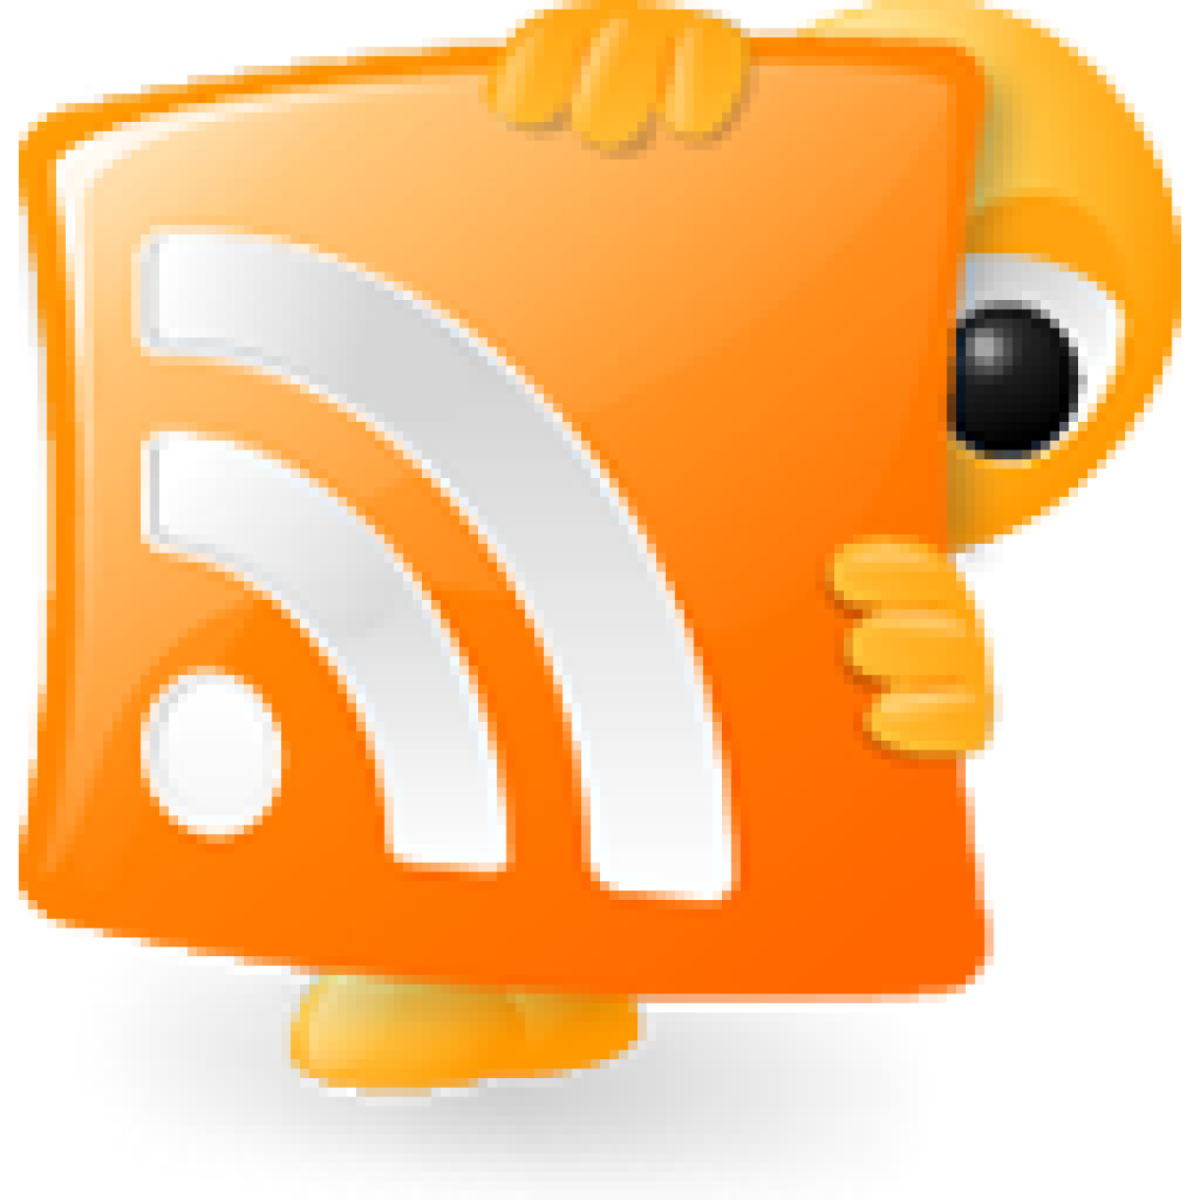 Png blog news. Rss web feed computer